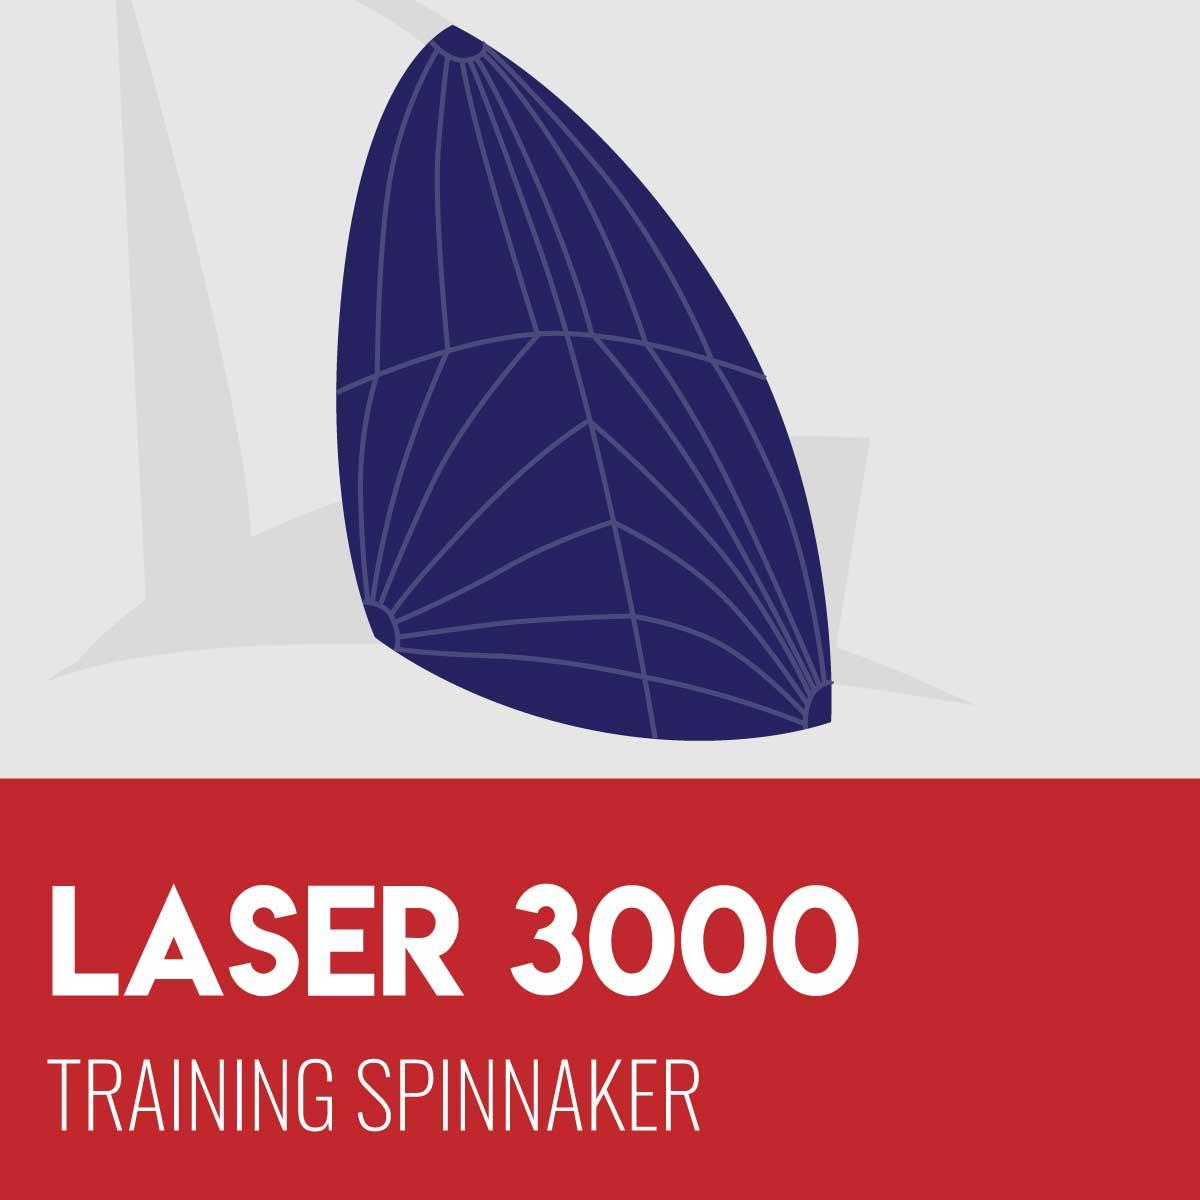 Laser 3000 Training Spinnaker